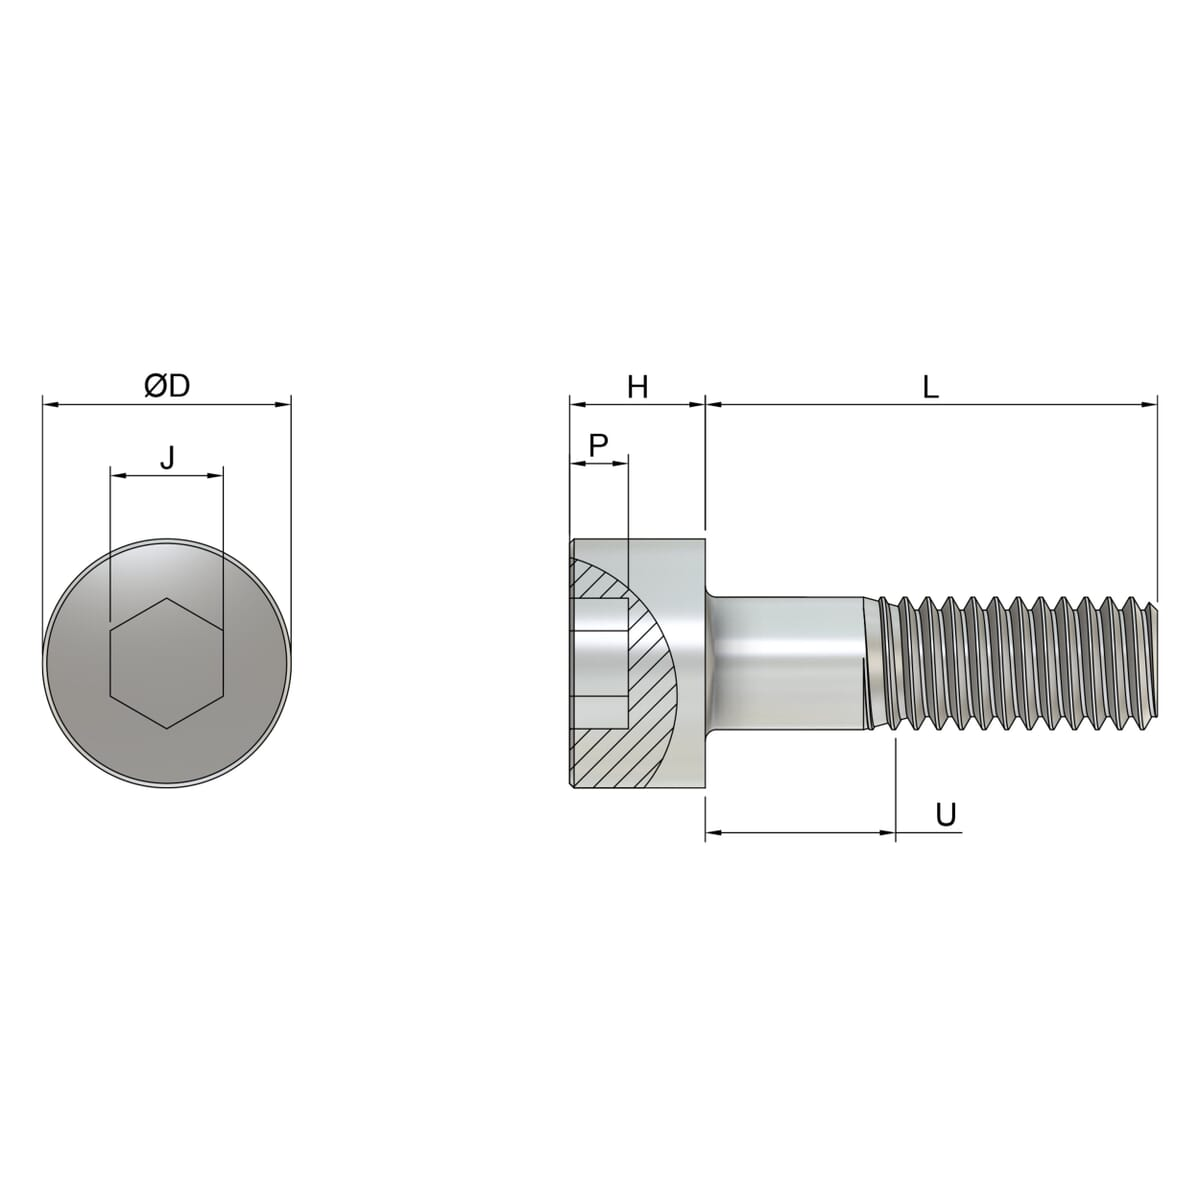 M12 x 280mm Cap Head Screws (DIN 912) - Marine Stainless Steel (A4) Drawing